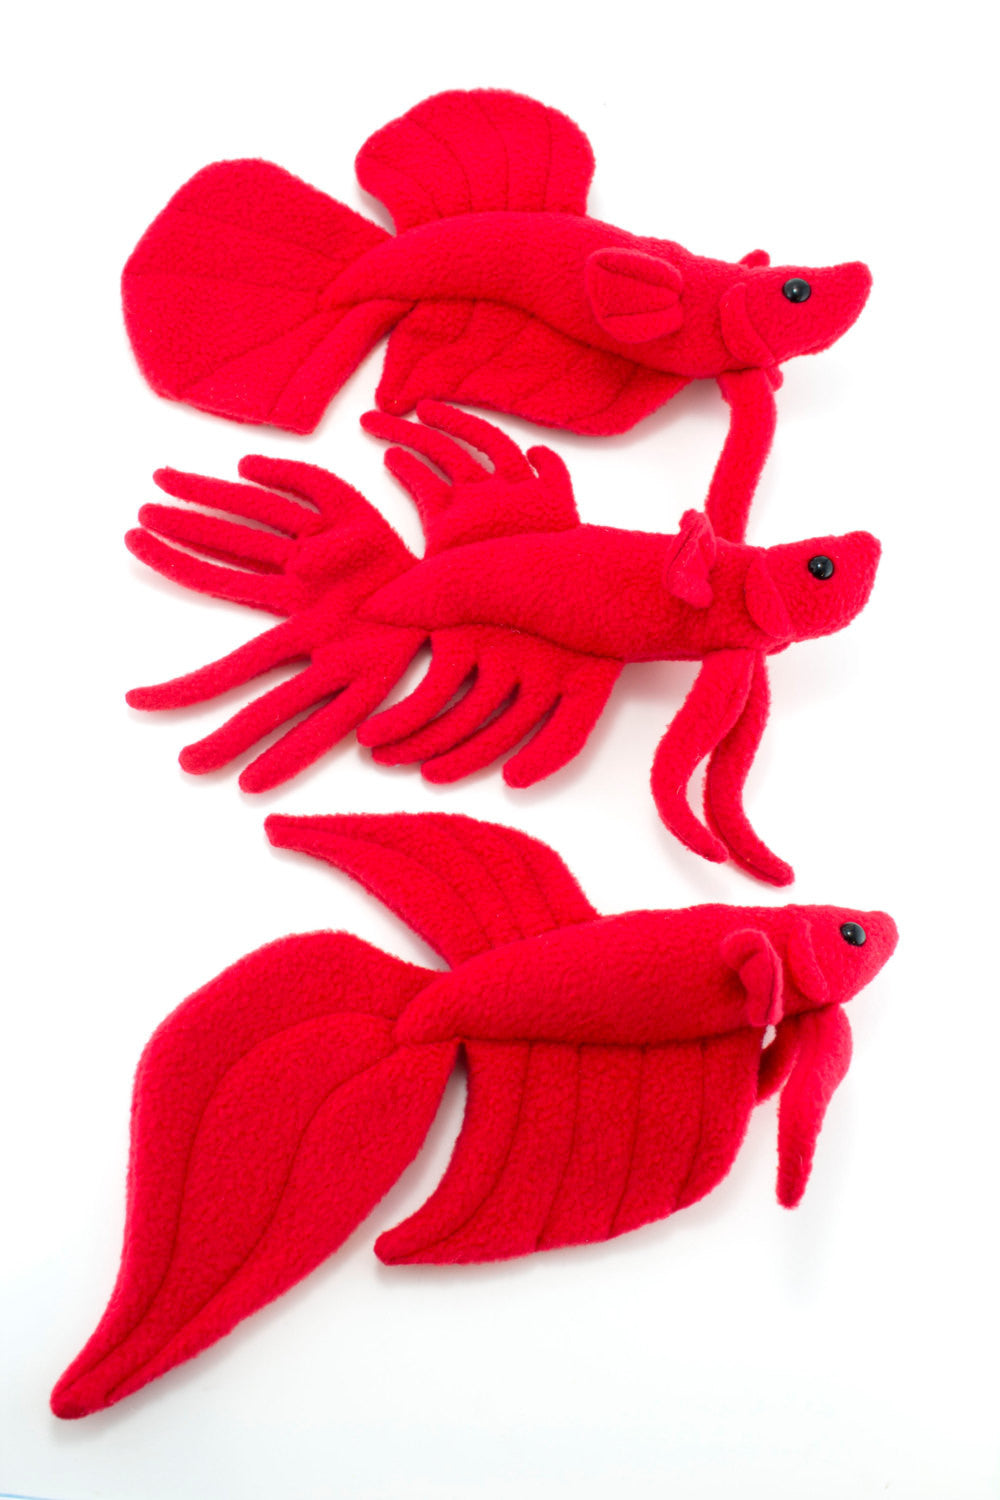 Betta Fish Stuffed Animal Sewing Pattern  - Digital Download - BeeZeeArt - 5